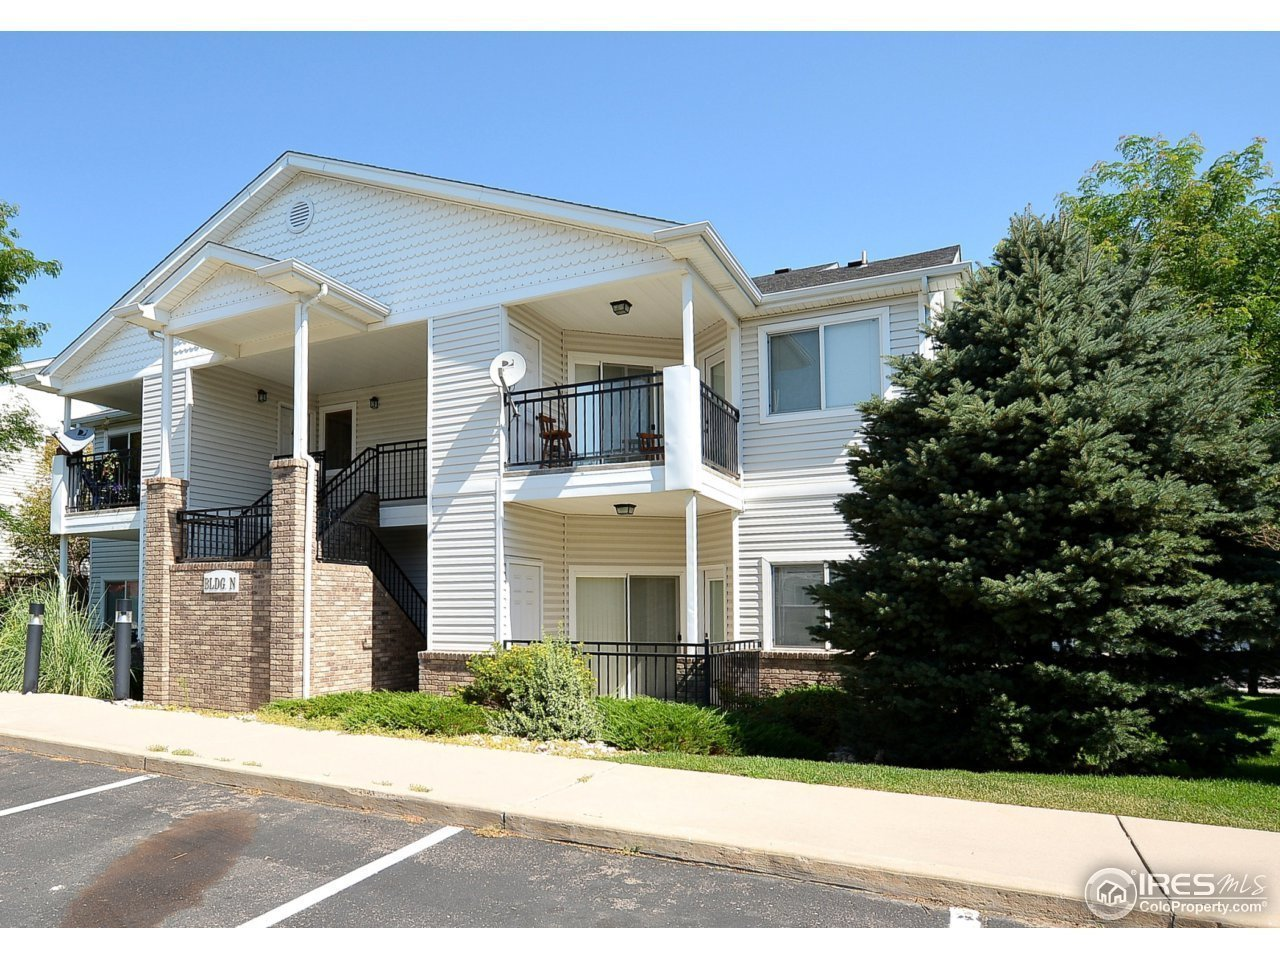 950 52nd ave ct #1, greeley, co 80634   mls# 827128   redfin